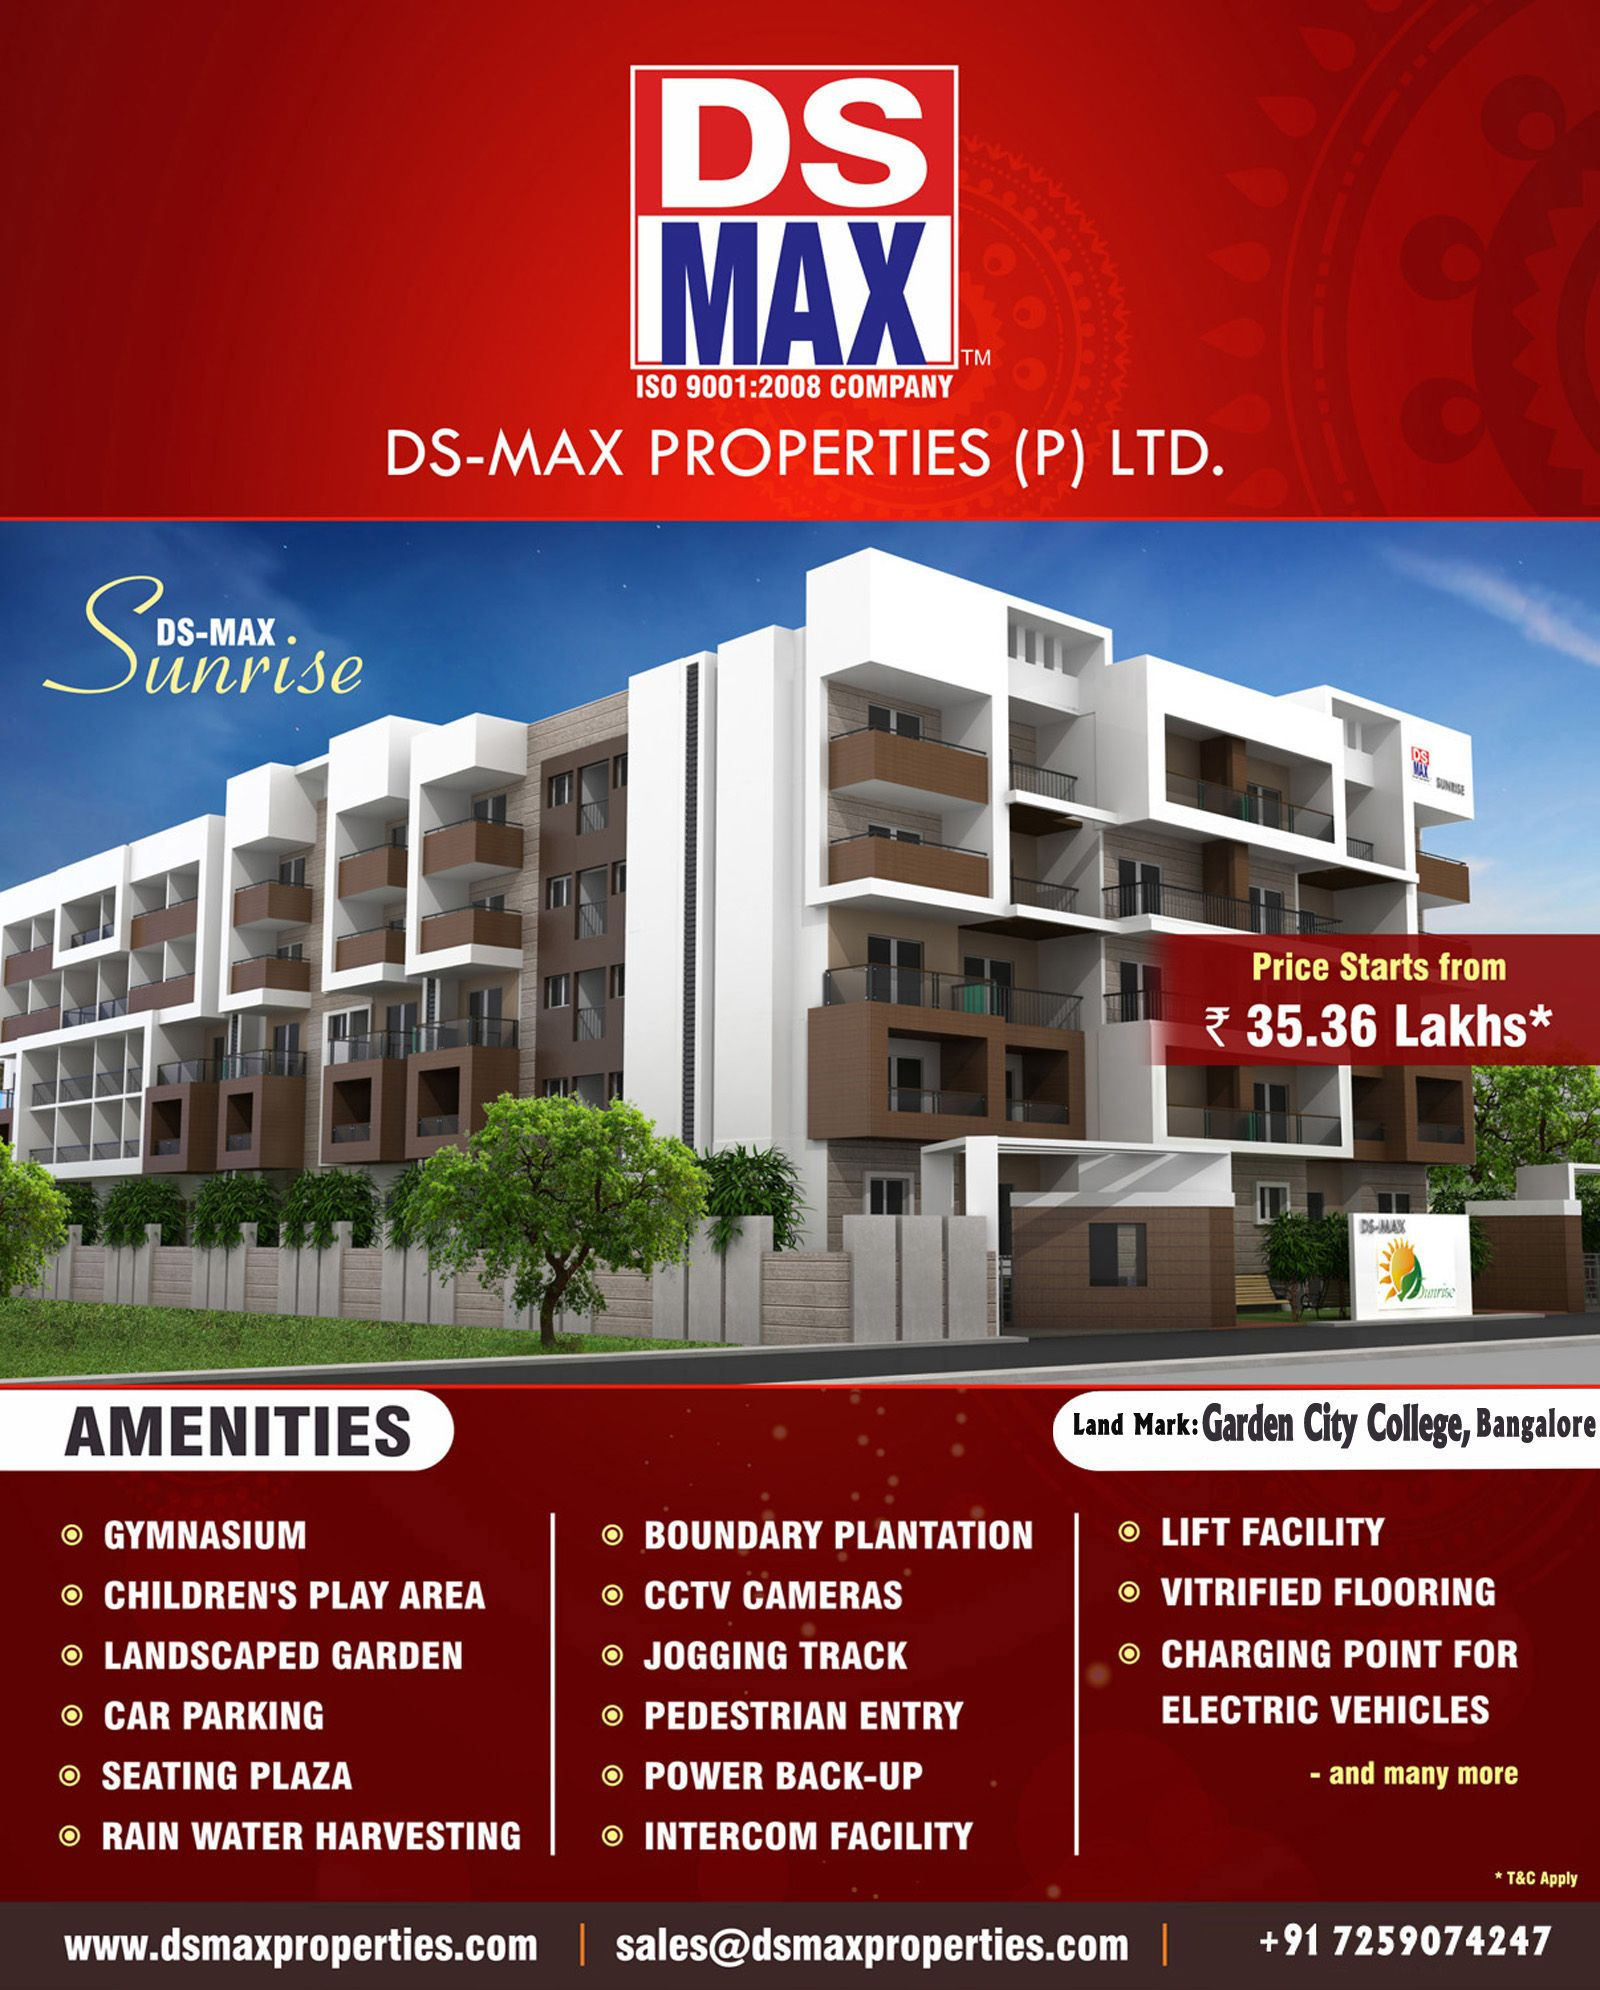 Ds Max Sunrise Premium 2 3 Bhk Apartment With Best In Class Amenities In Kithaganur Near Ga Garden City City College Apartments For Sale